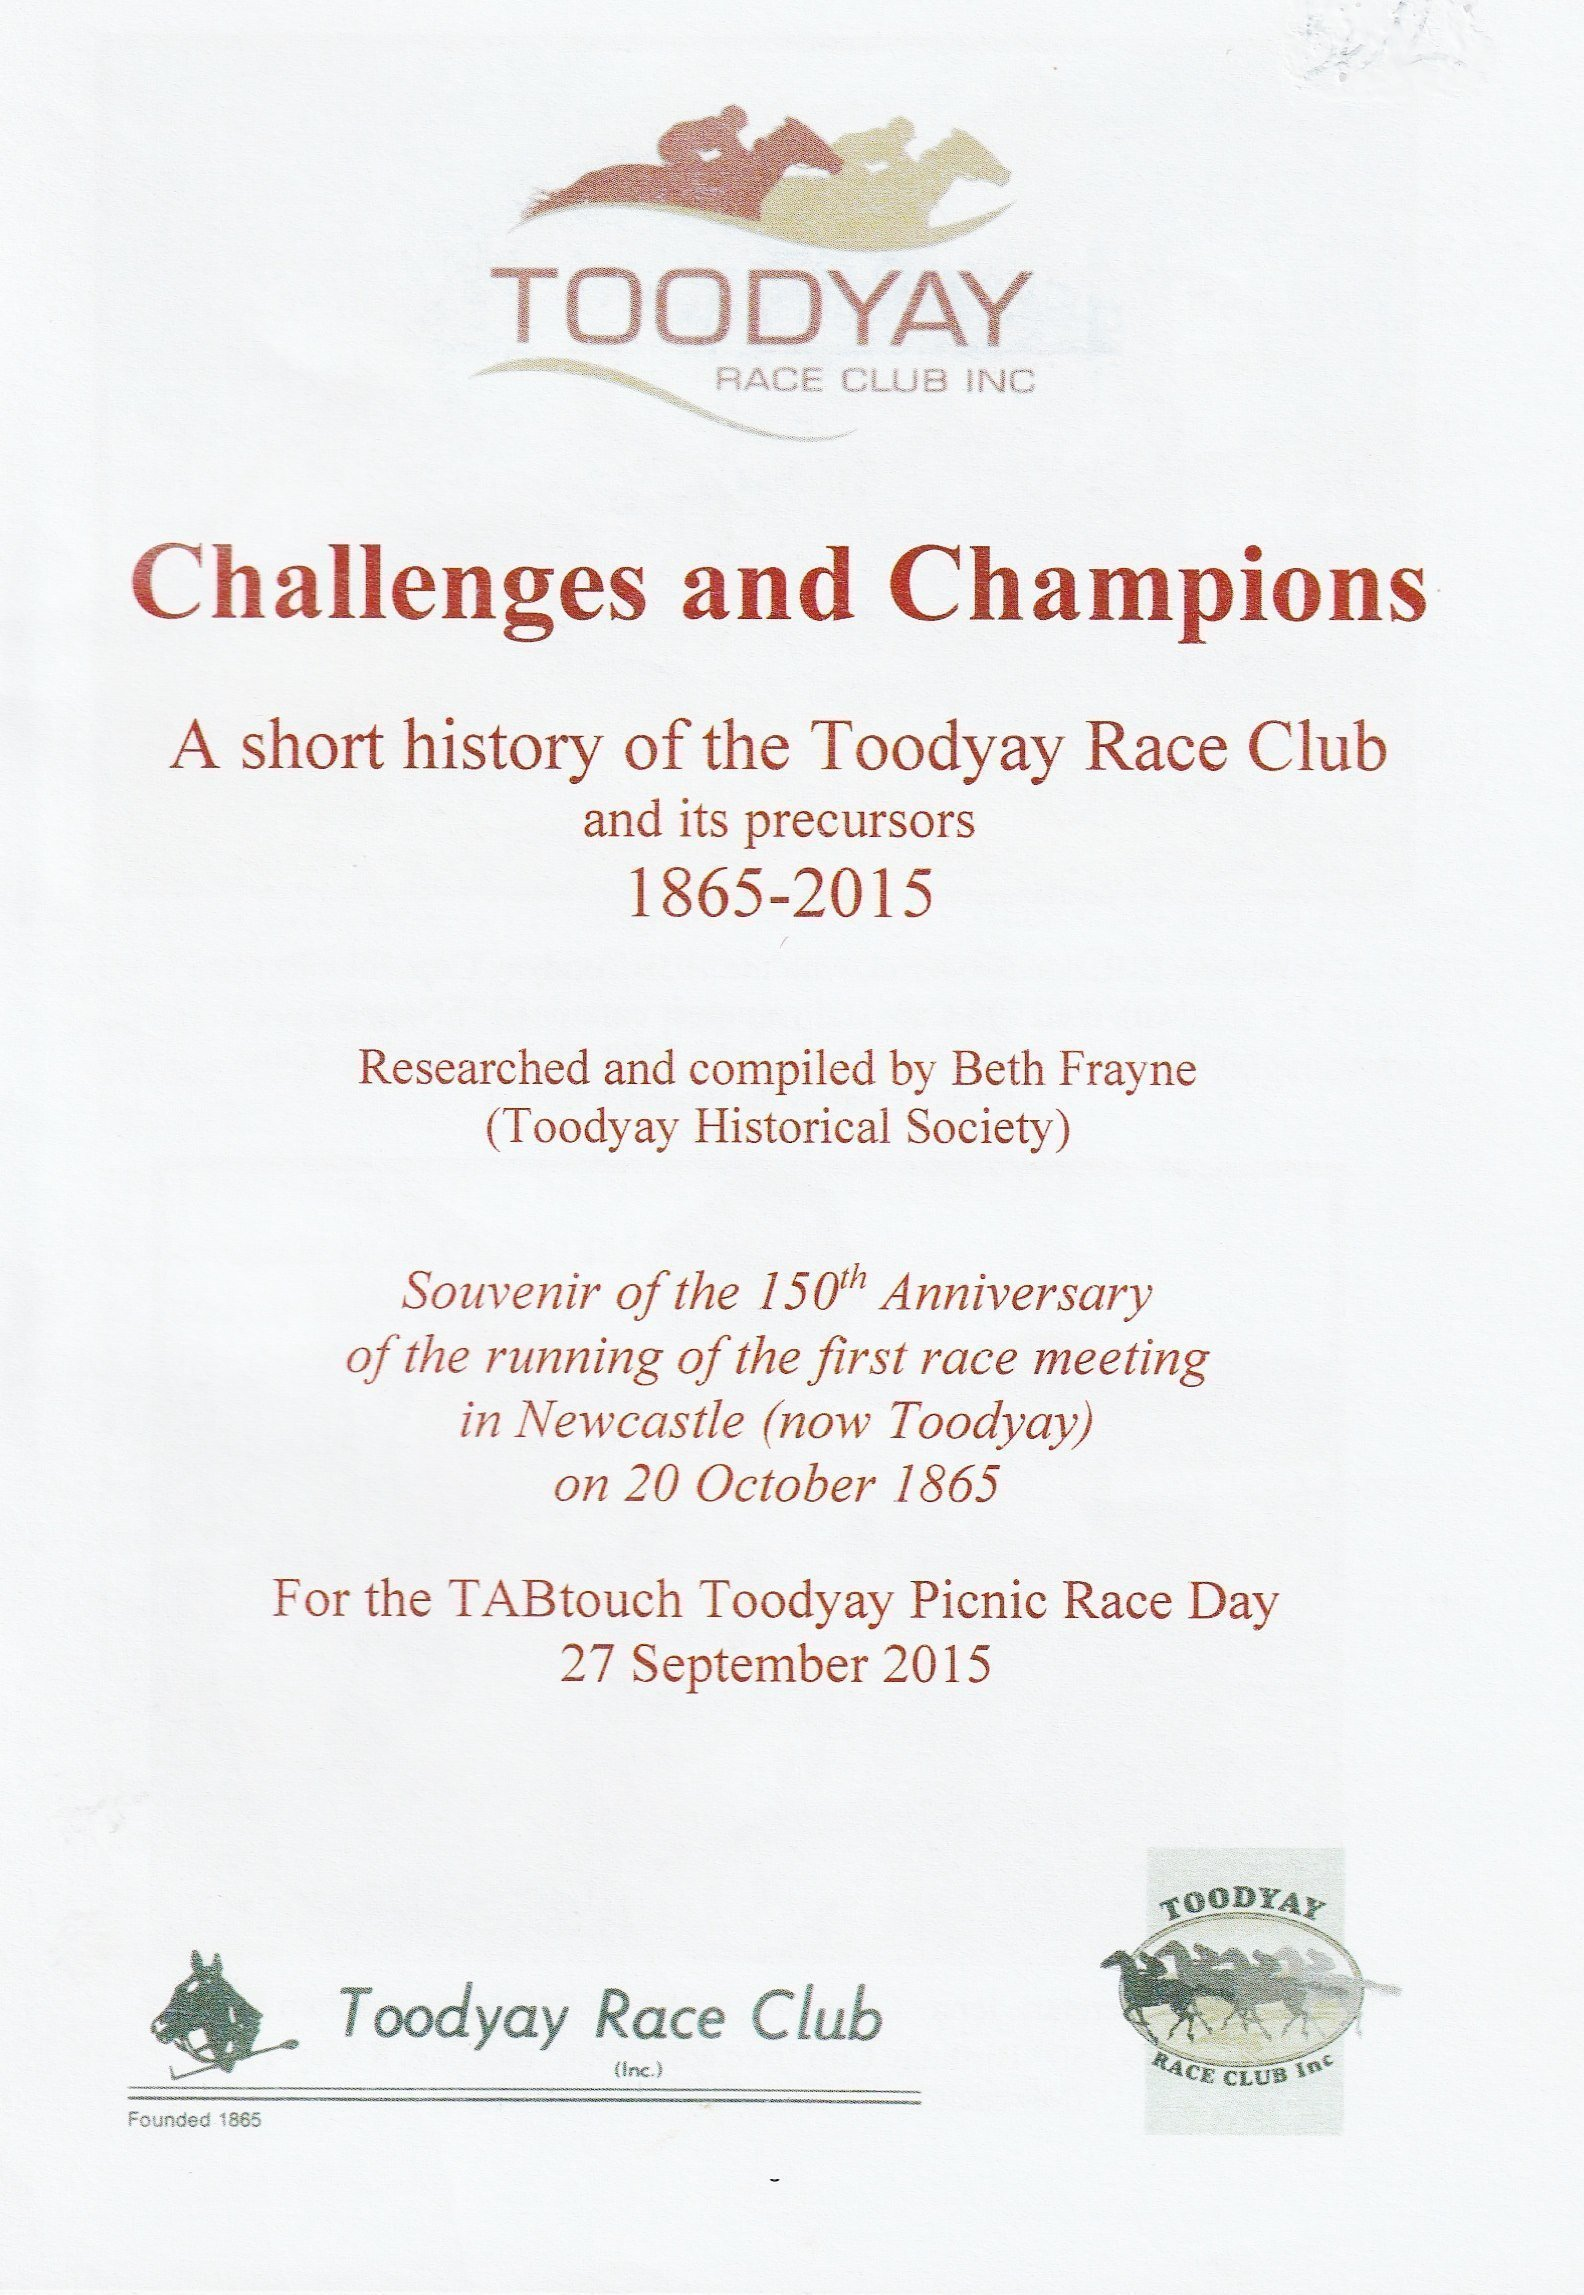 Challenges and champions: a short history of the Toodyay Race Club and its precursors, 1865-2015